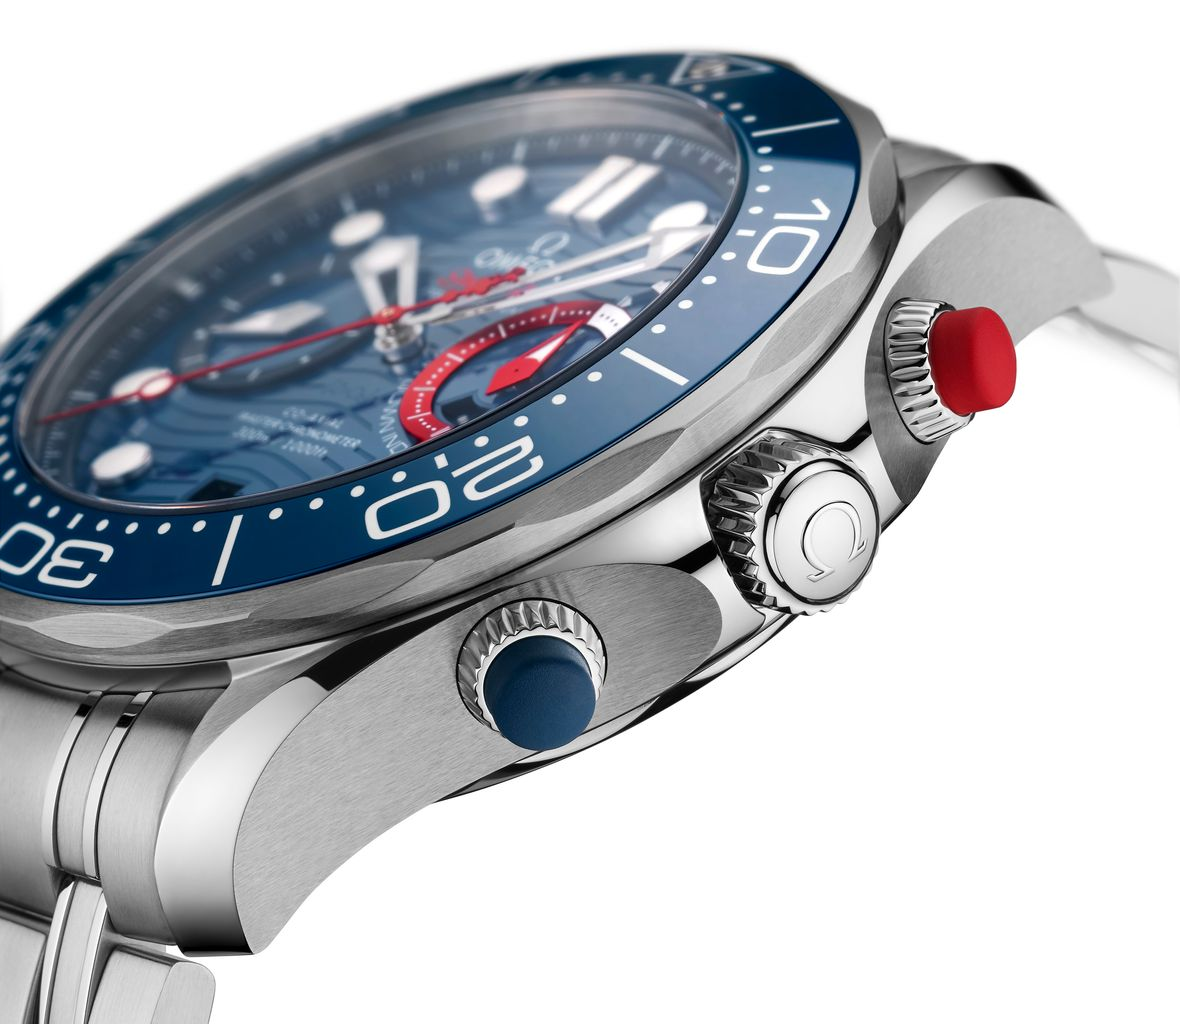 Omega Seamaster Diver 300M America's Cup Edition Rubberized Chronograph Pushers